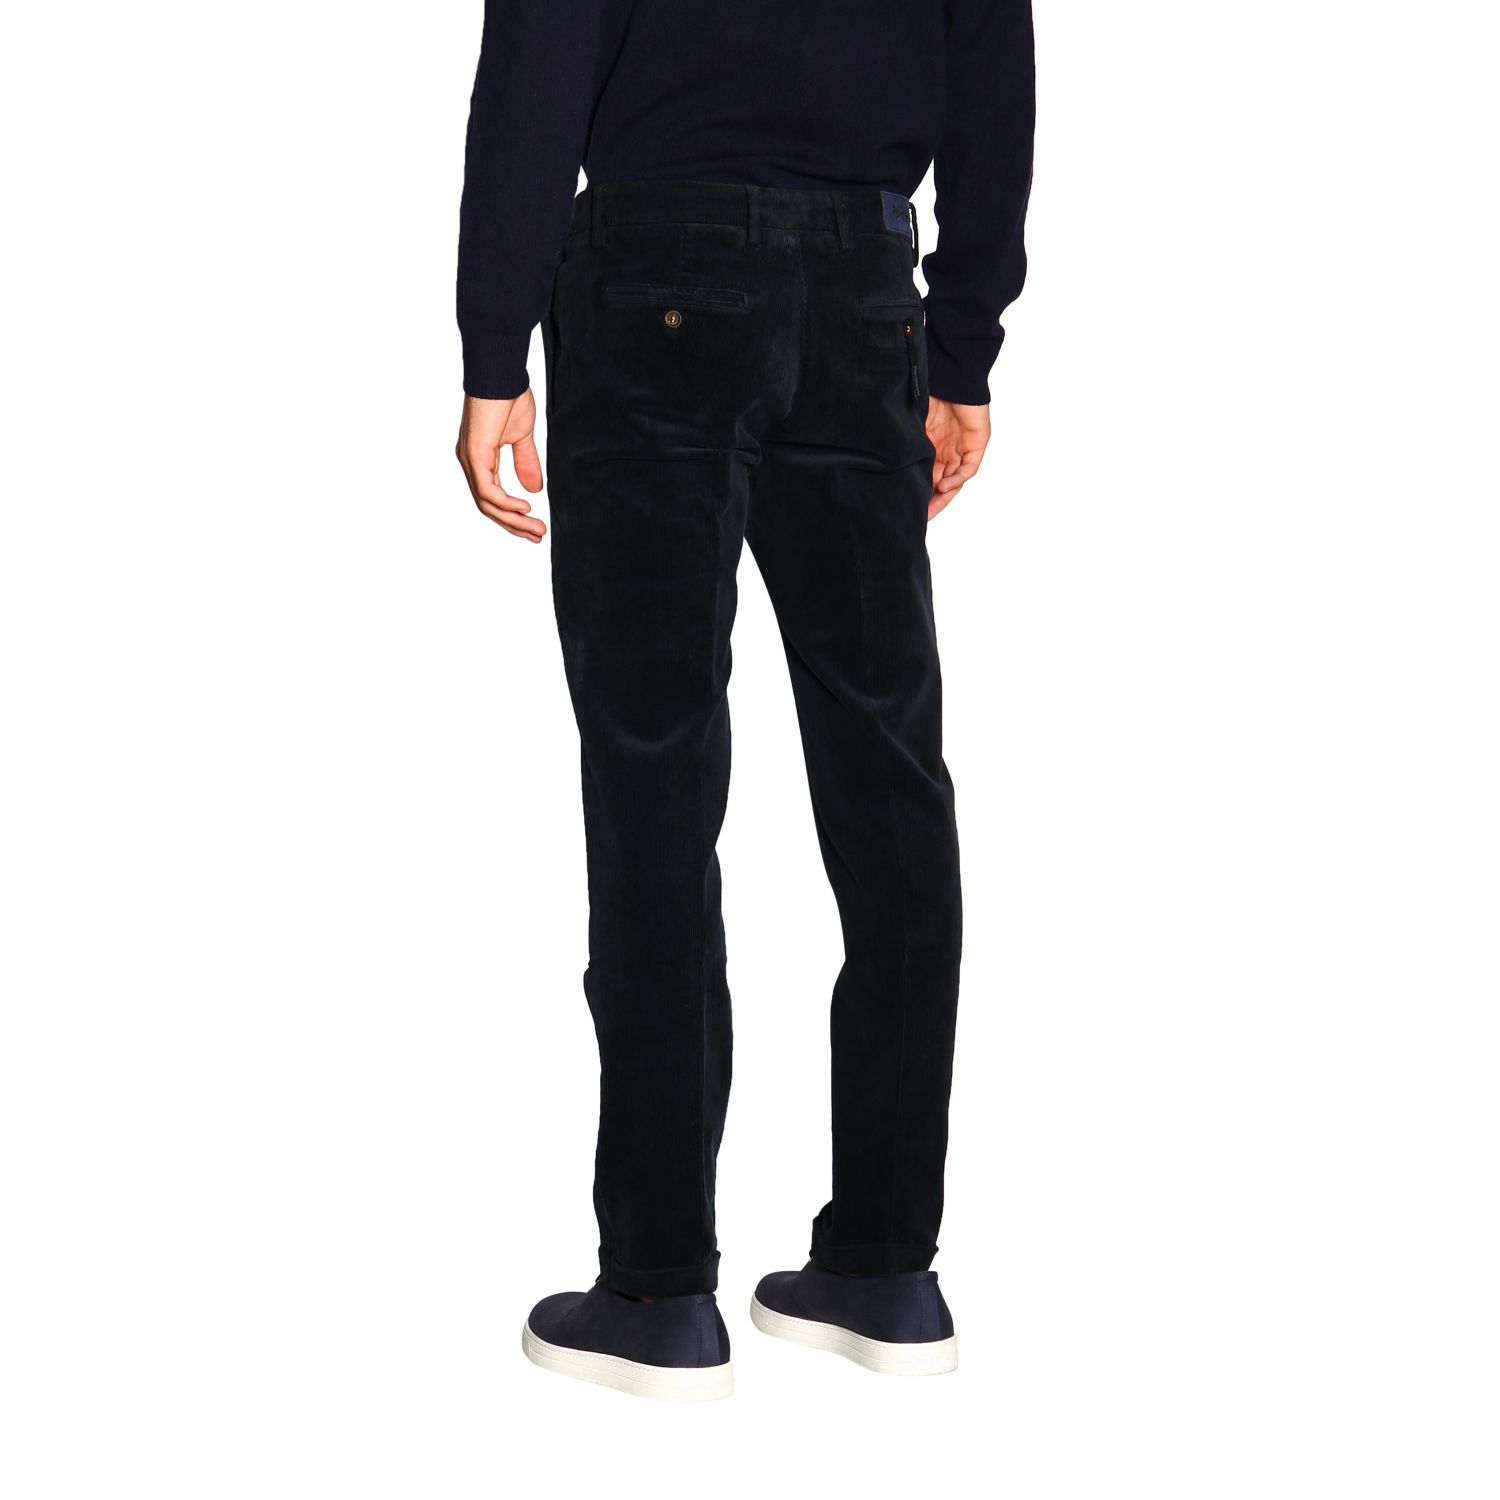 Pants men Re-hash blue 3